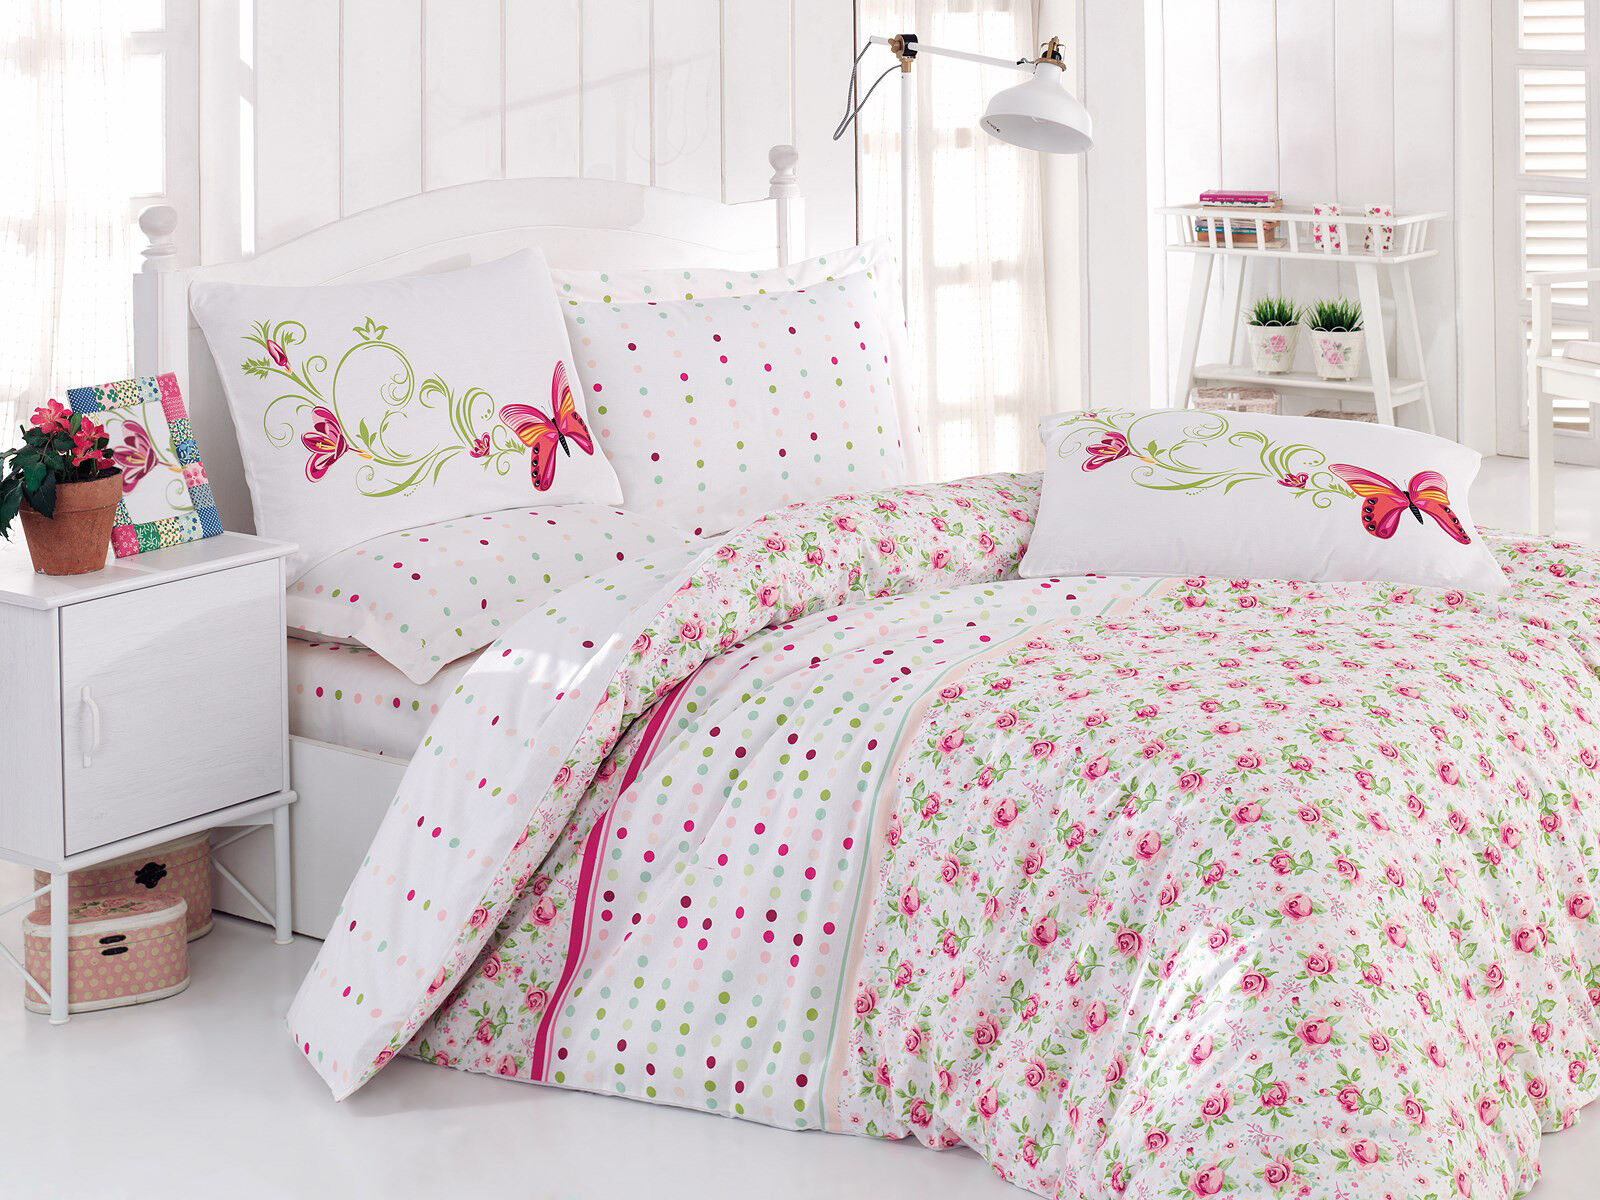 Floral White Pink Duvet Cover 100 Cotton Soft Bedding Set Reversible Queen King Ebay